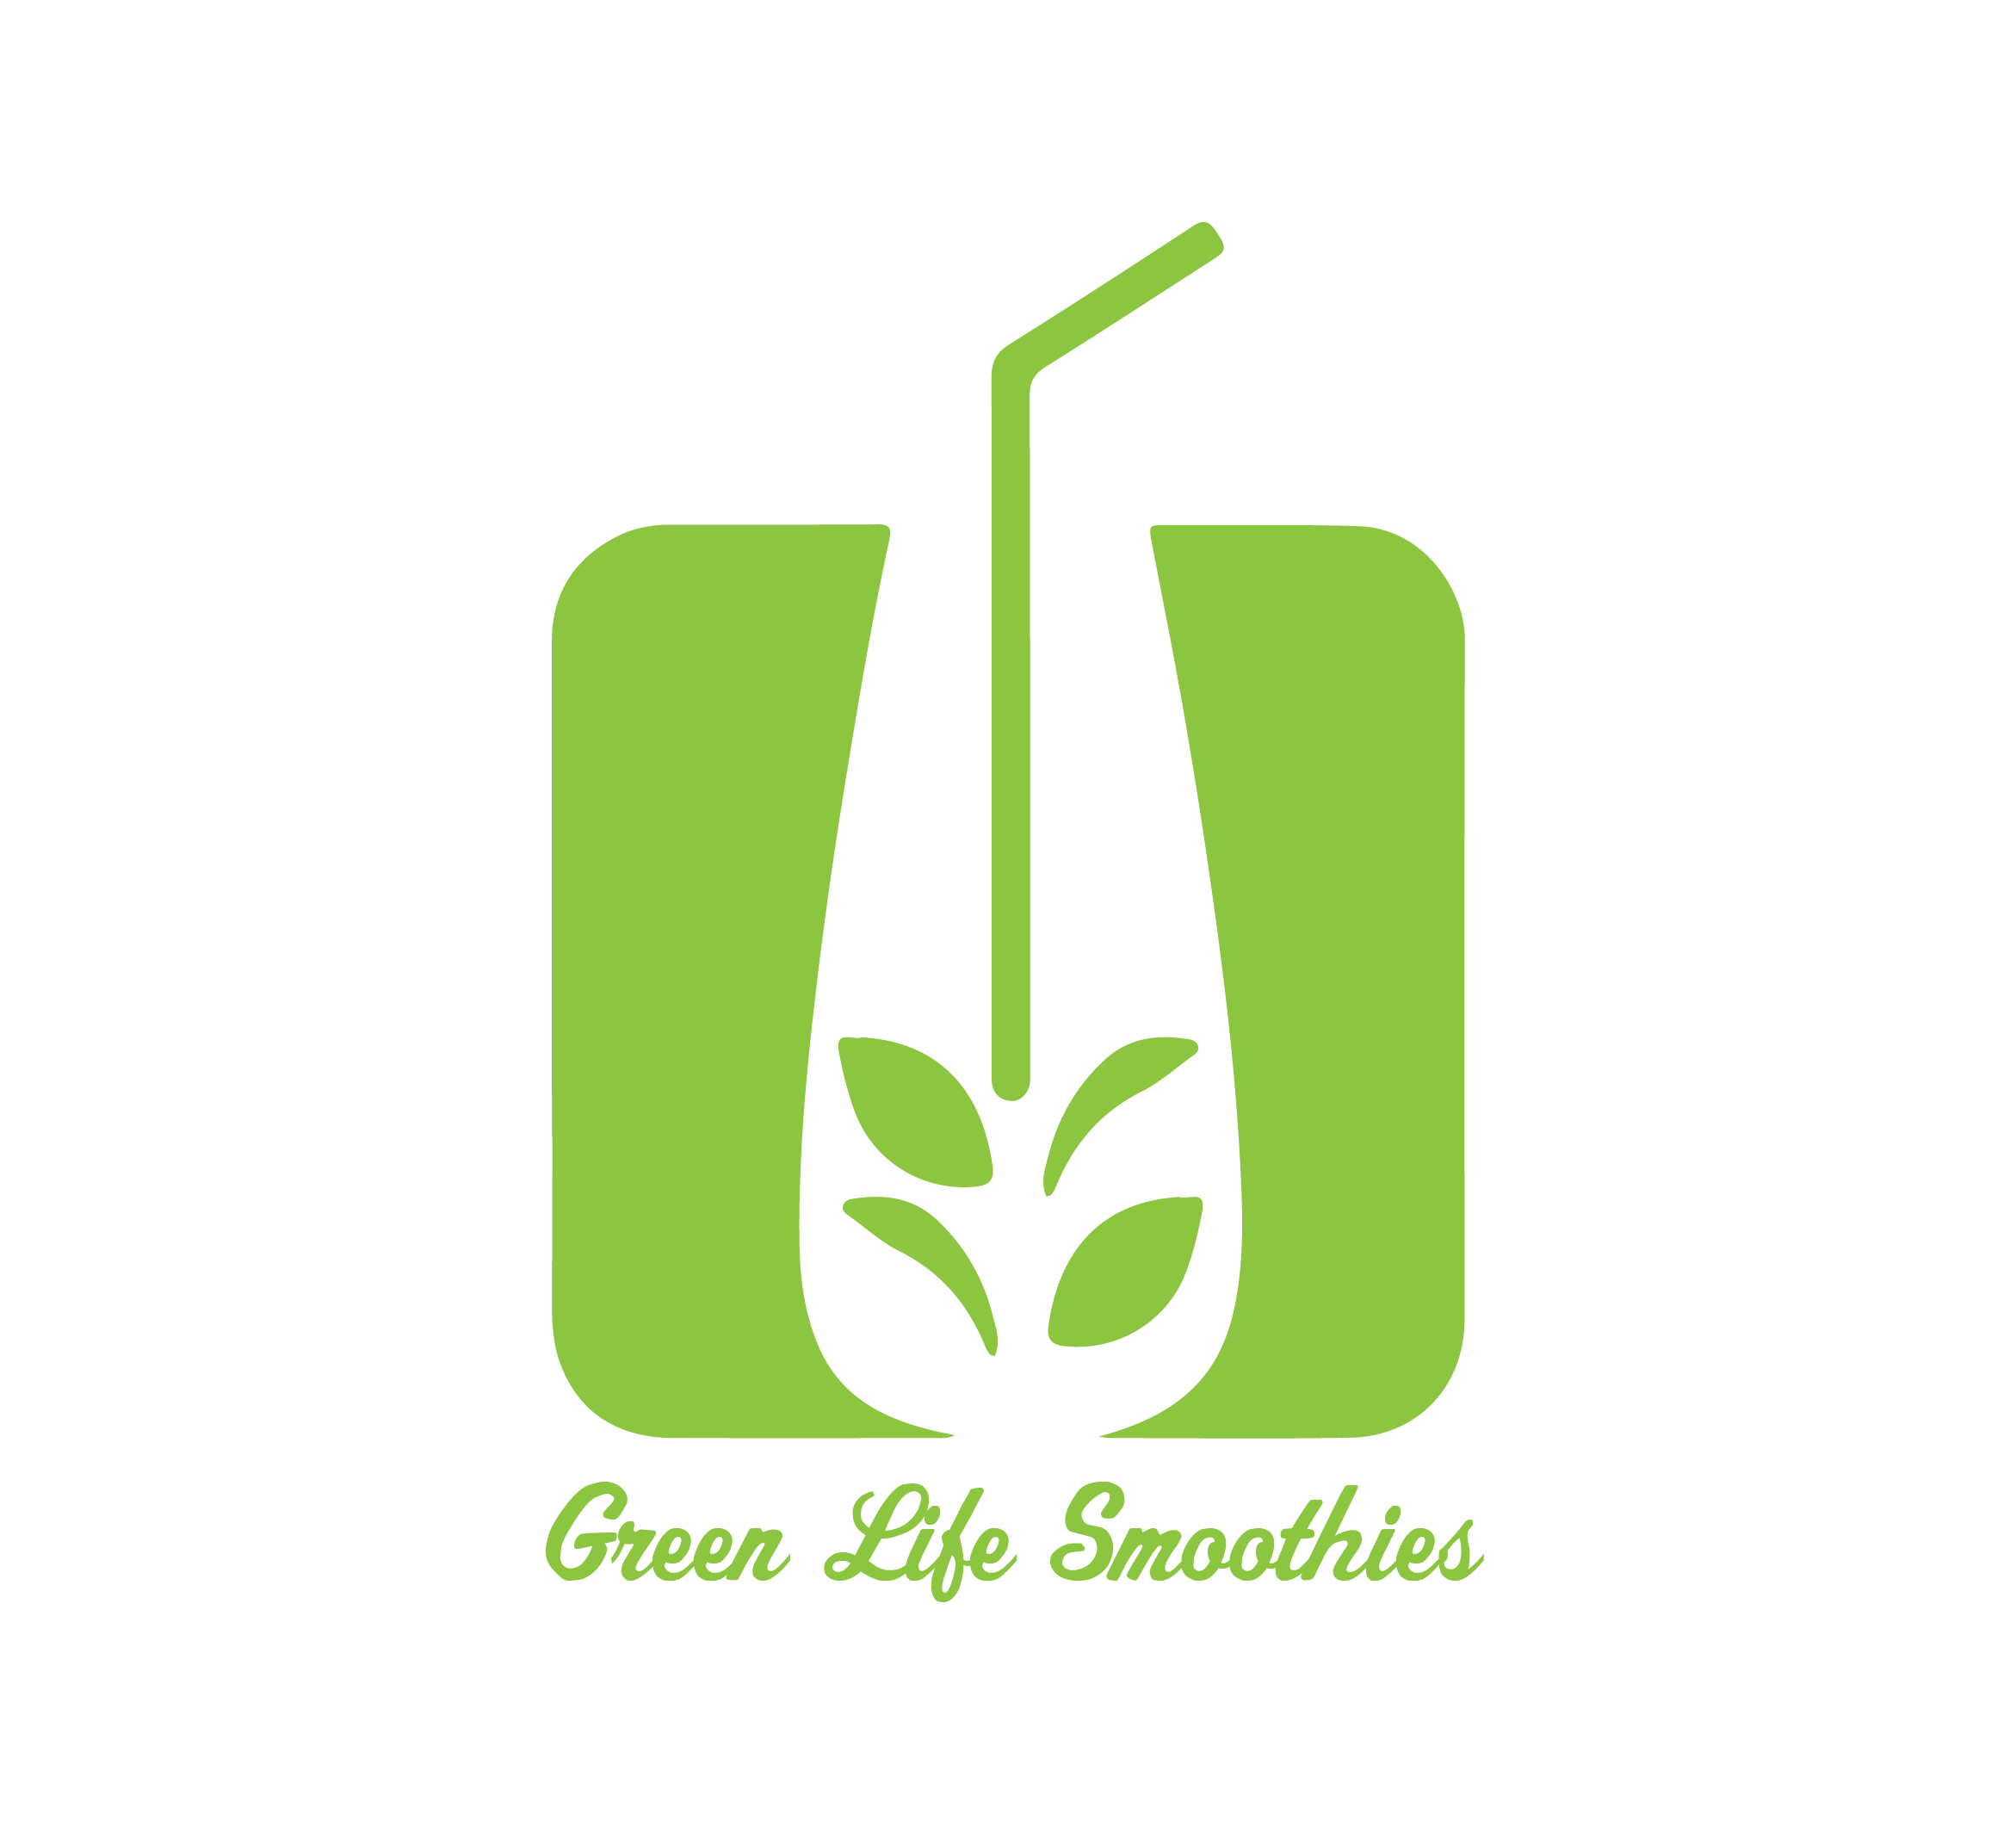 GreenLifeSmoothiesLogo_Square_Green_NoBkgnd.png